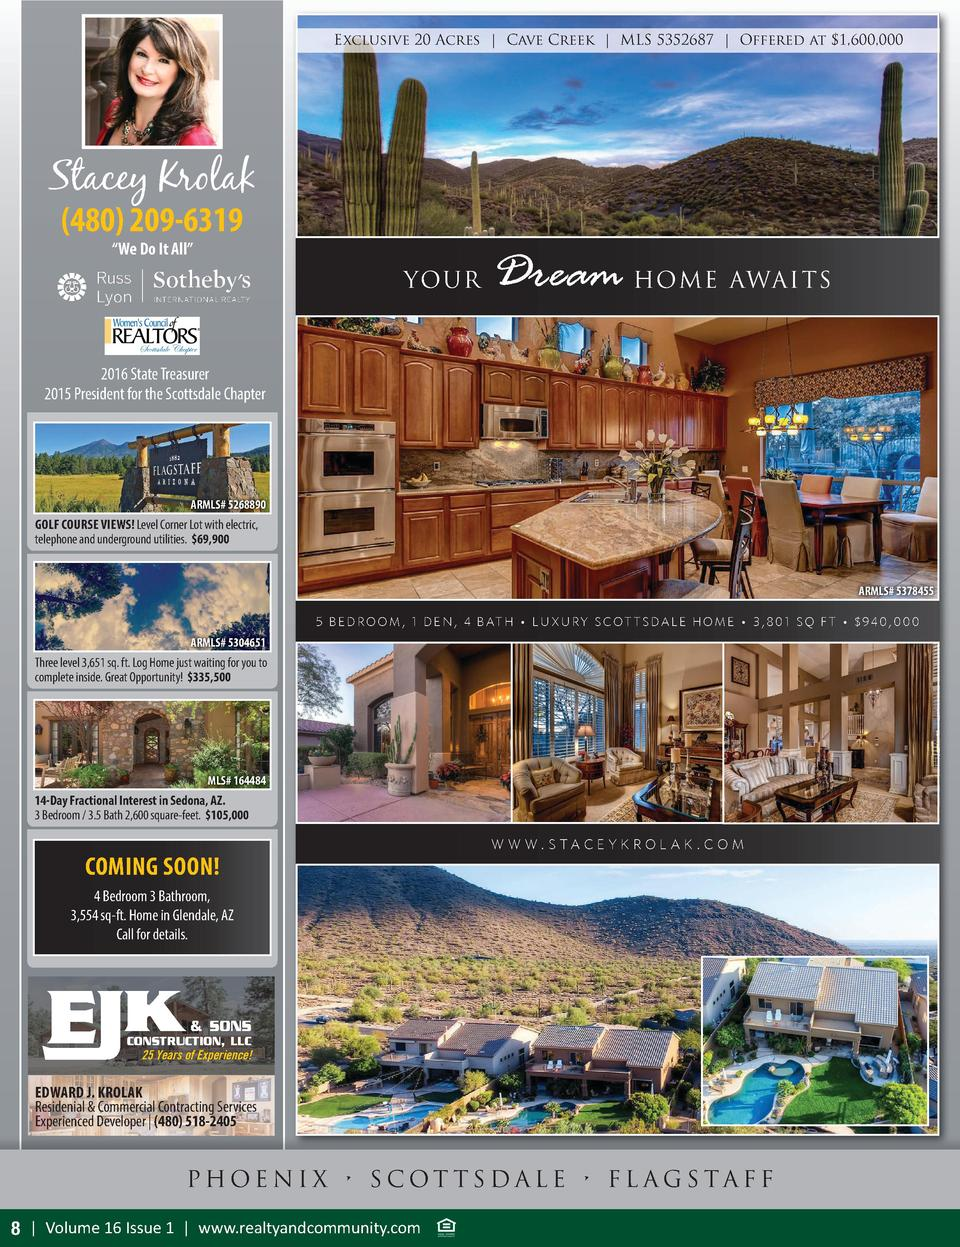 Exclusive 20 Acres   Cave Creek   MLS 5352687   Offered at  1,600,000  Stacey Krolak  480  209-6319    We Do It All     YO...